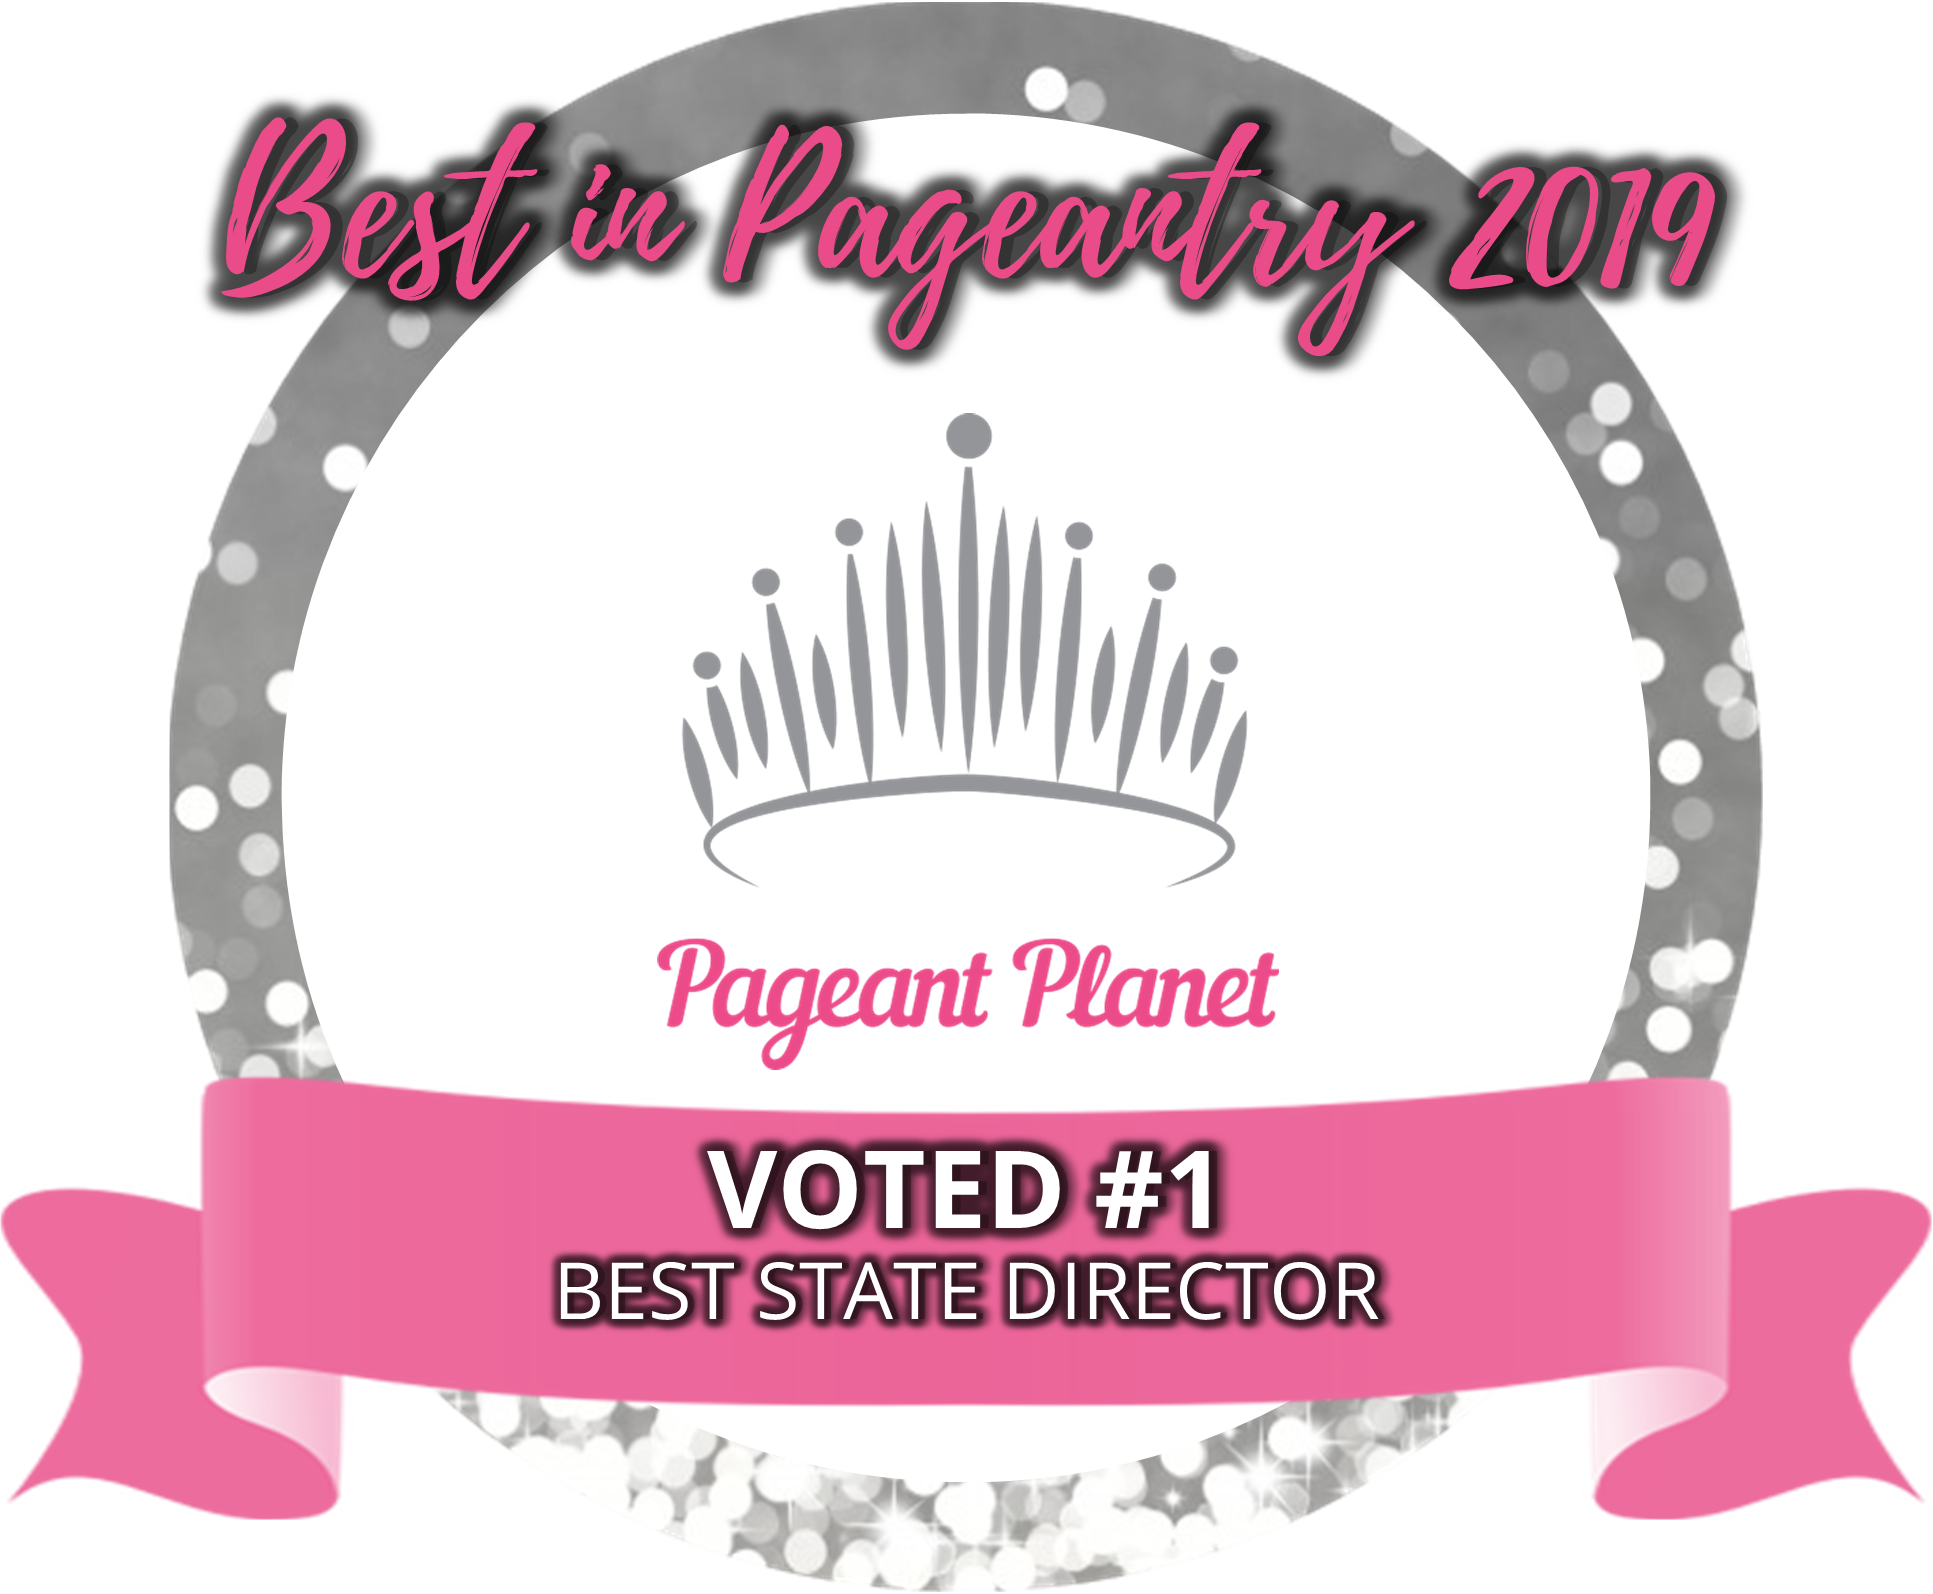 #1 Best State Pageant Director of 2019